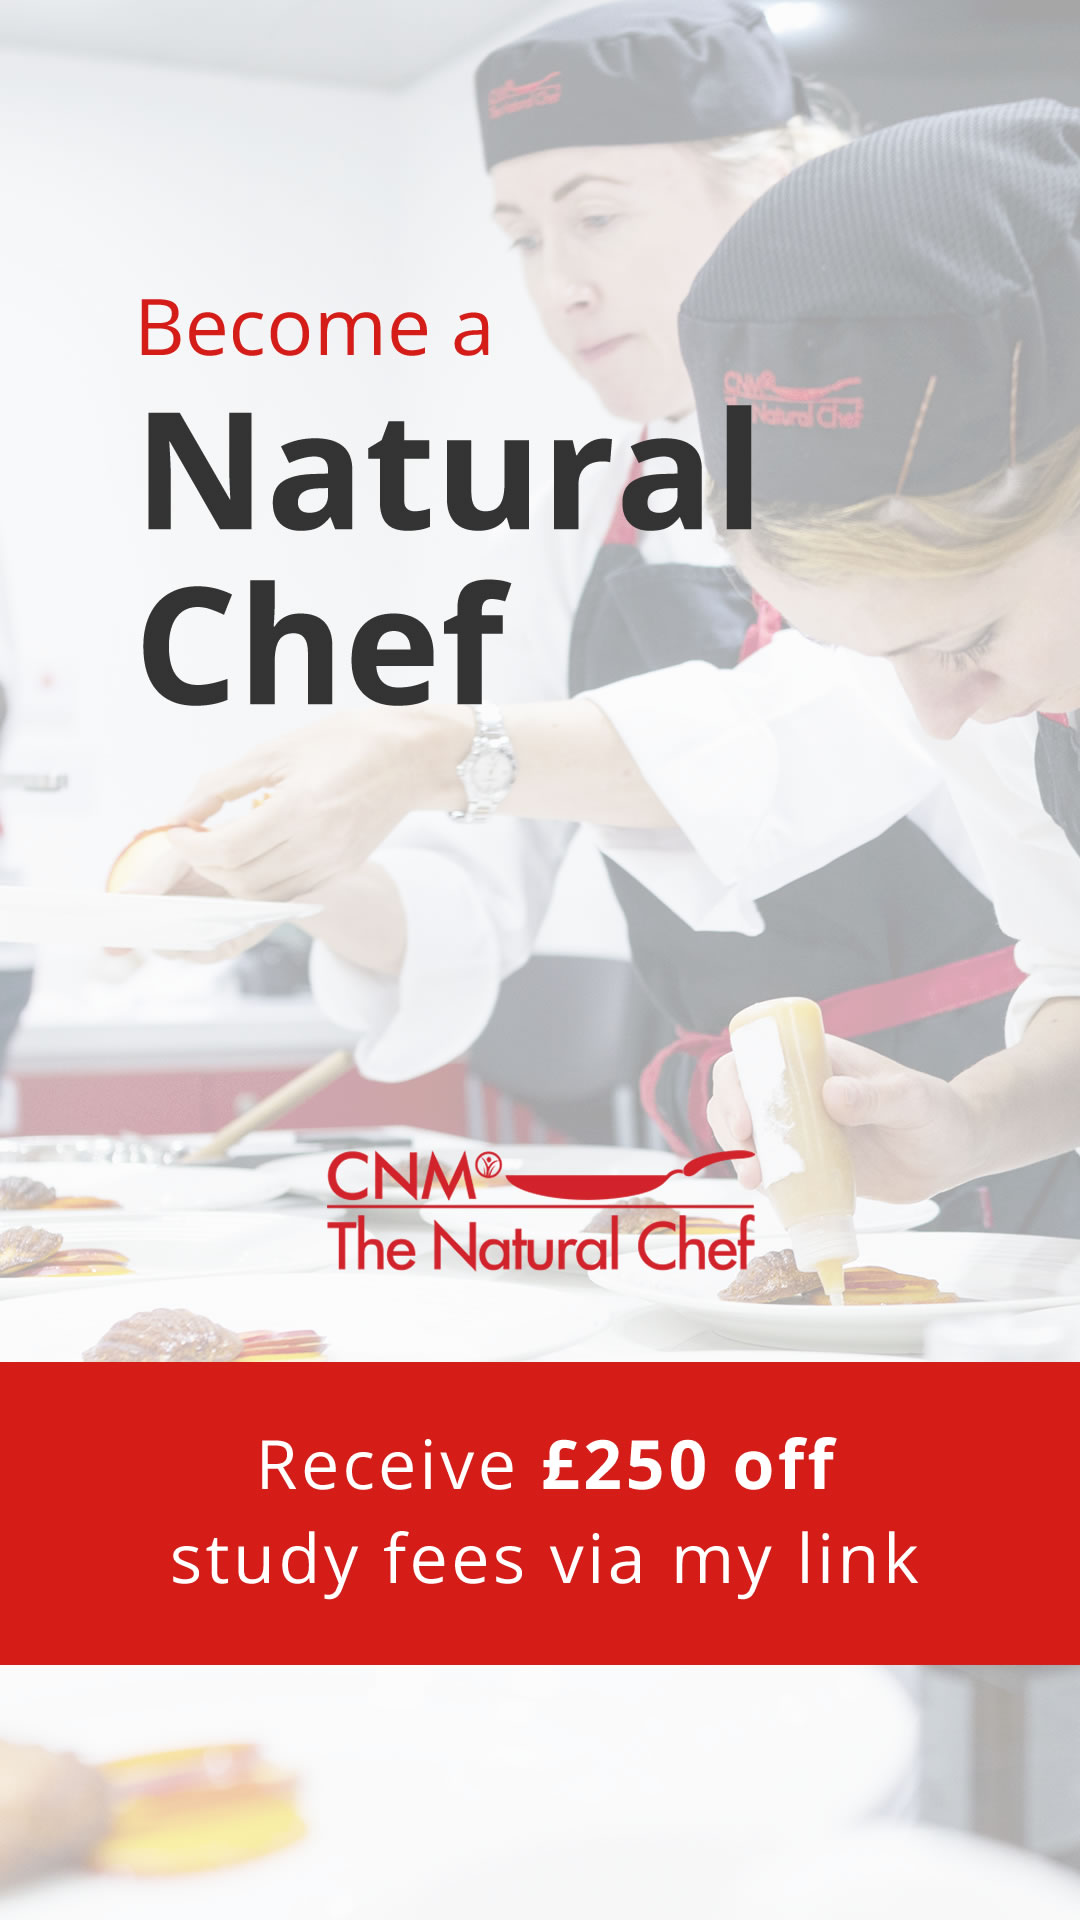 Become a Natural Chef